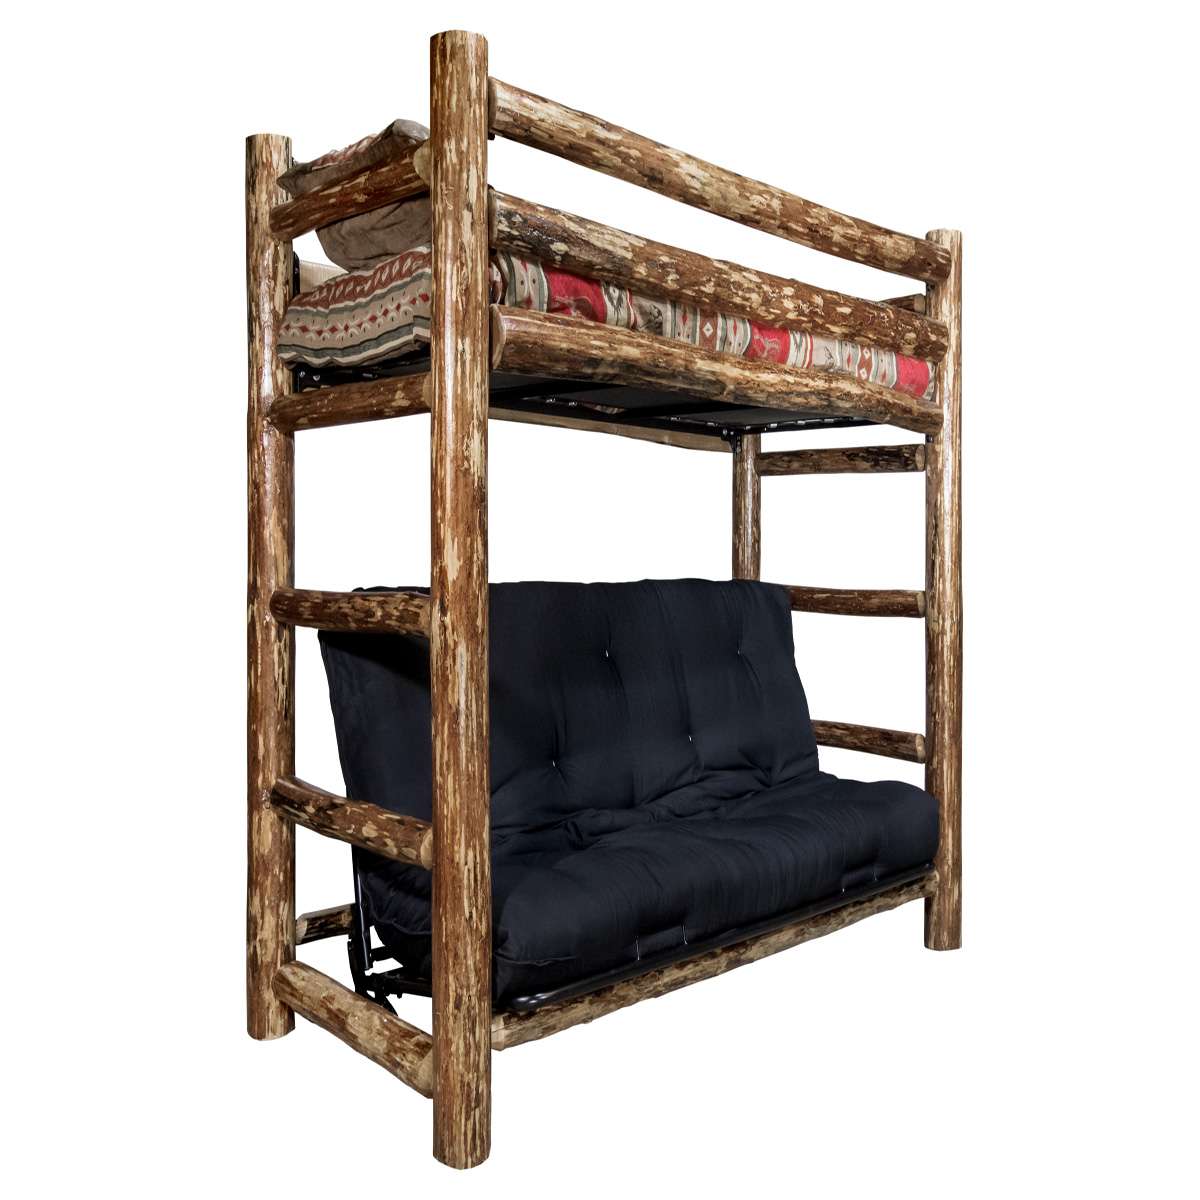 Black Forest Decor Jackson hole bunk bed - twin over full...